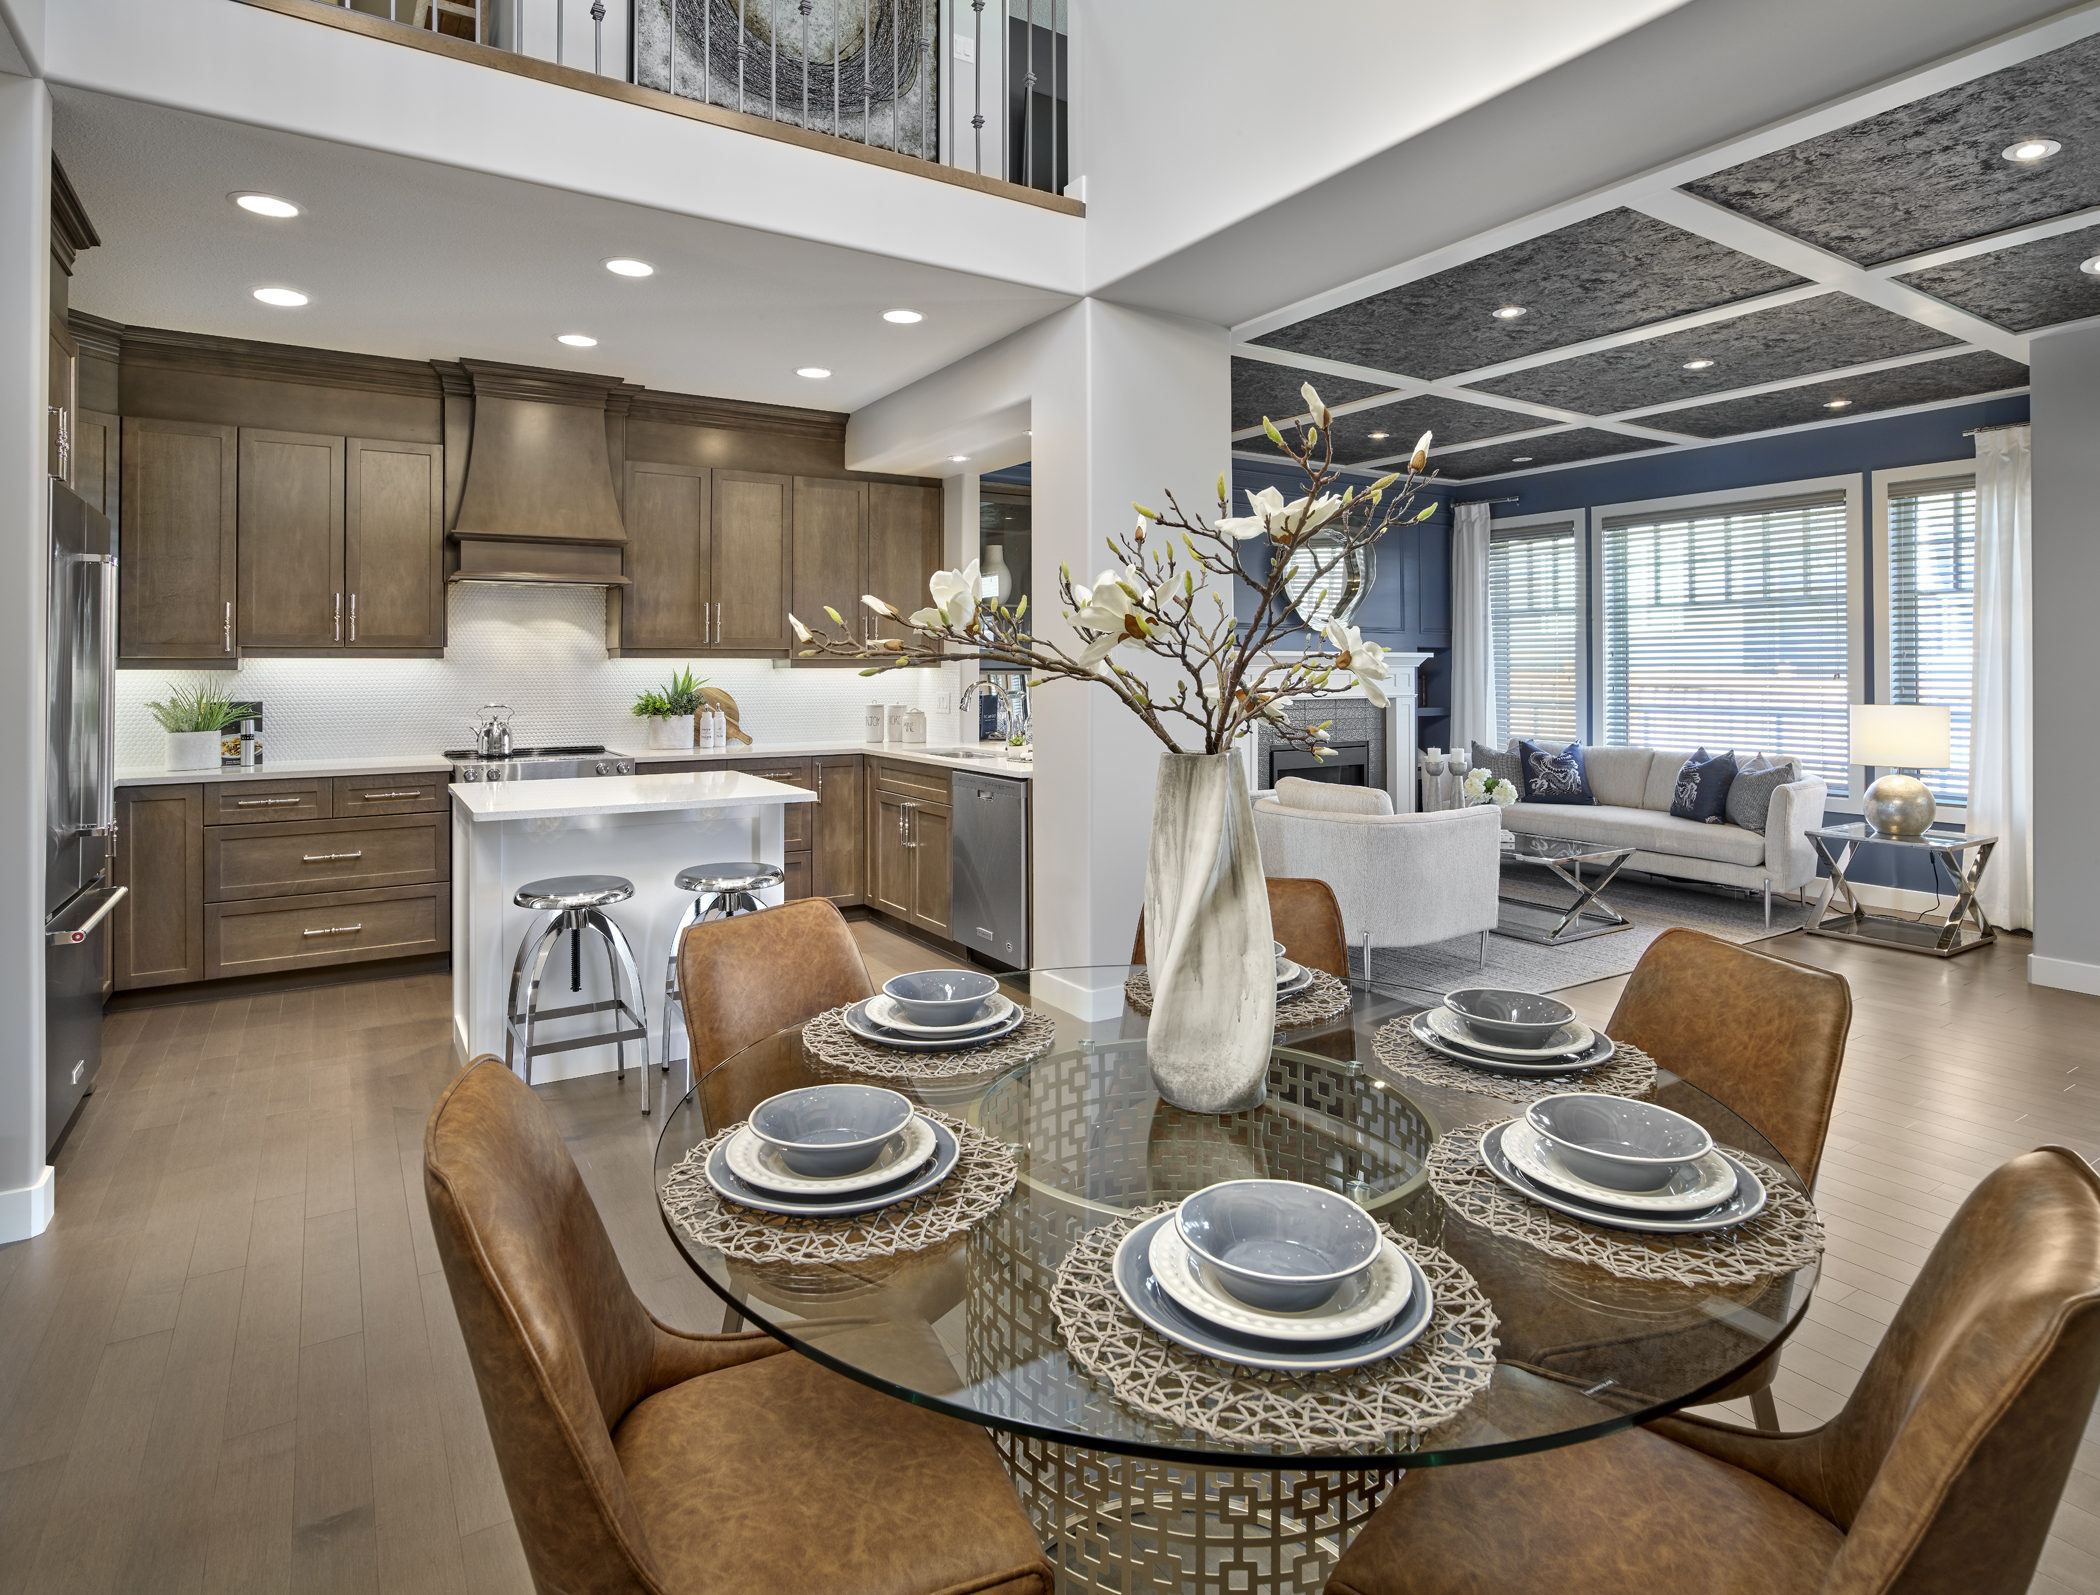 Open concept main floor of a home decorated in earth tones with blue accents